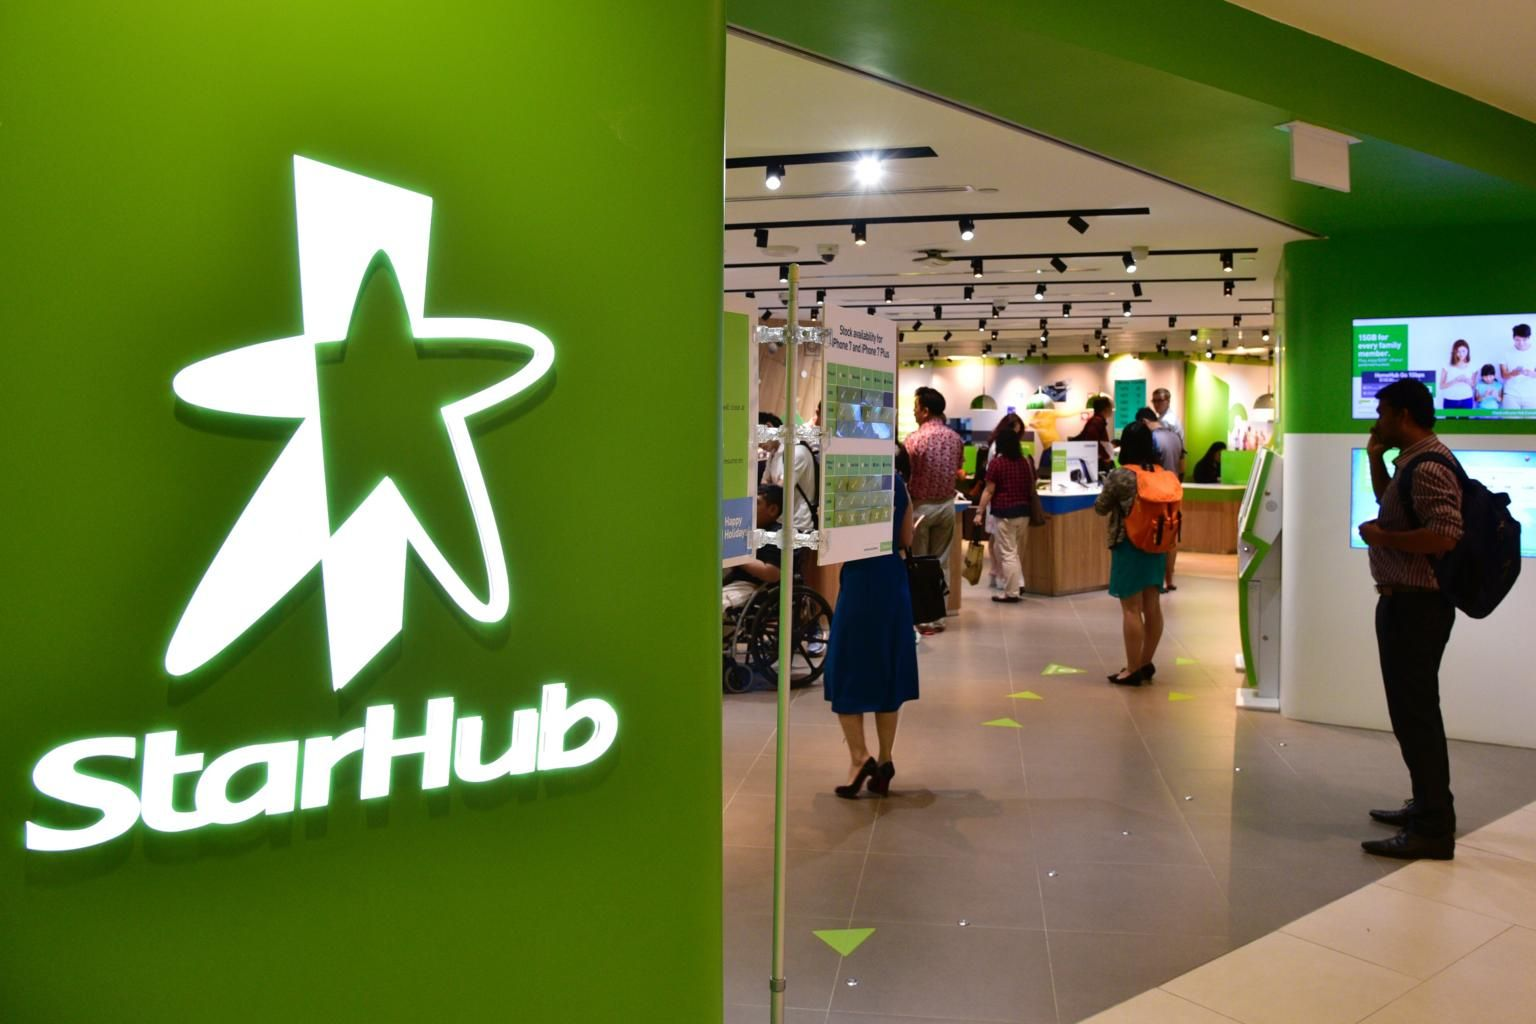 StarHub to let 300 full-time employees go, CEO cites